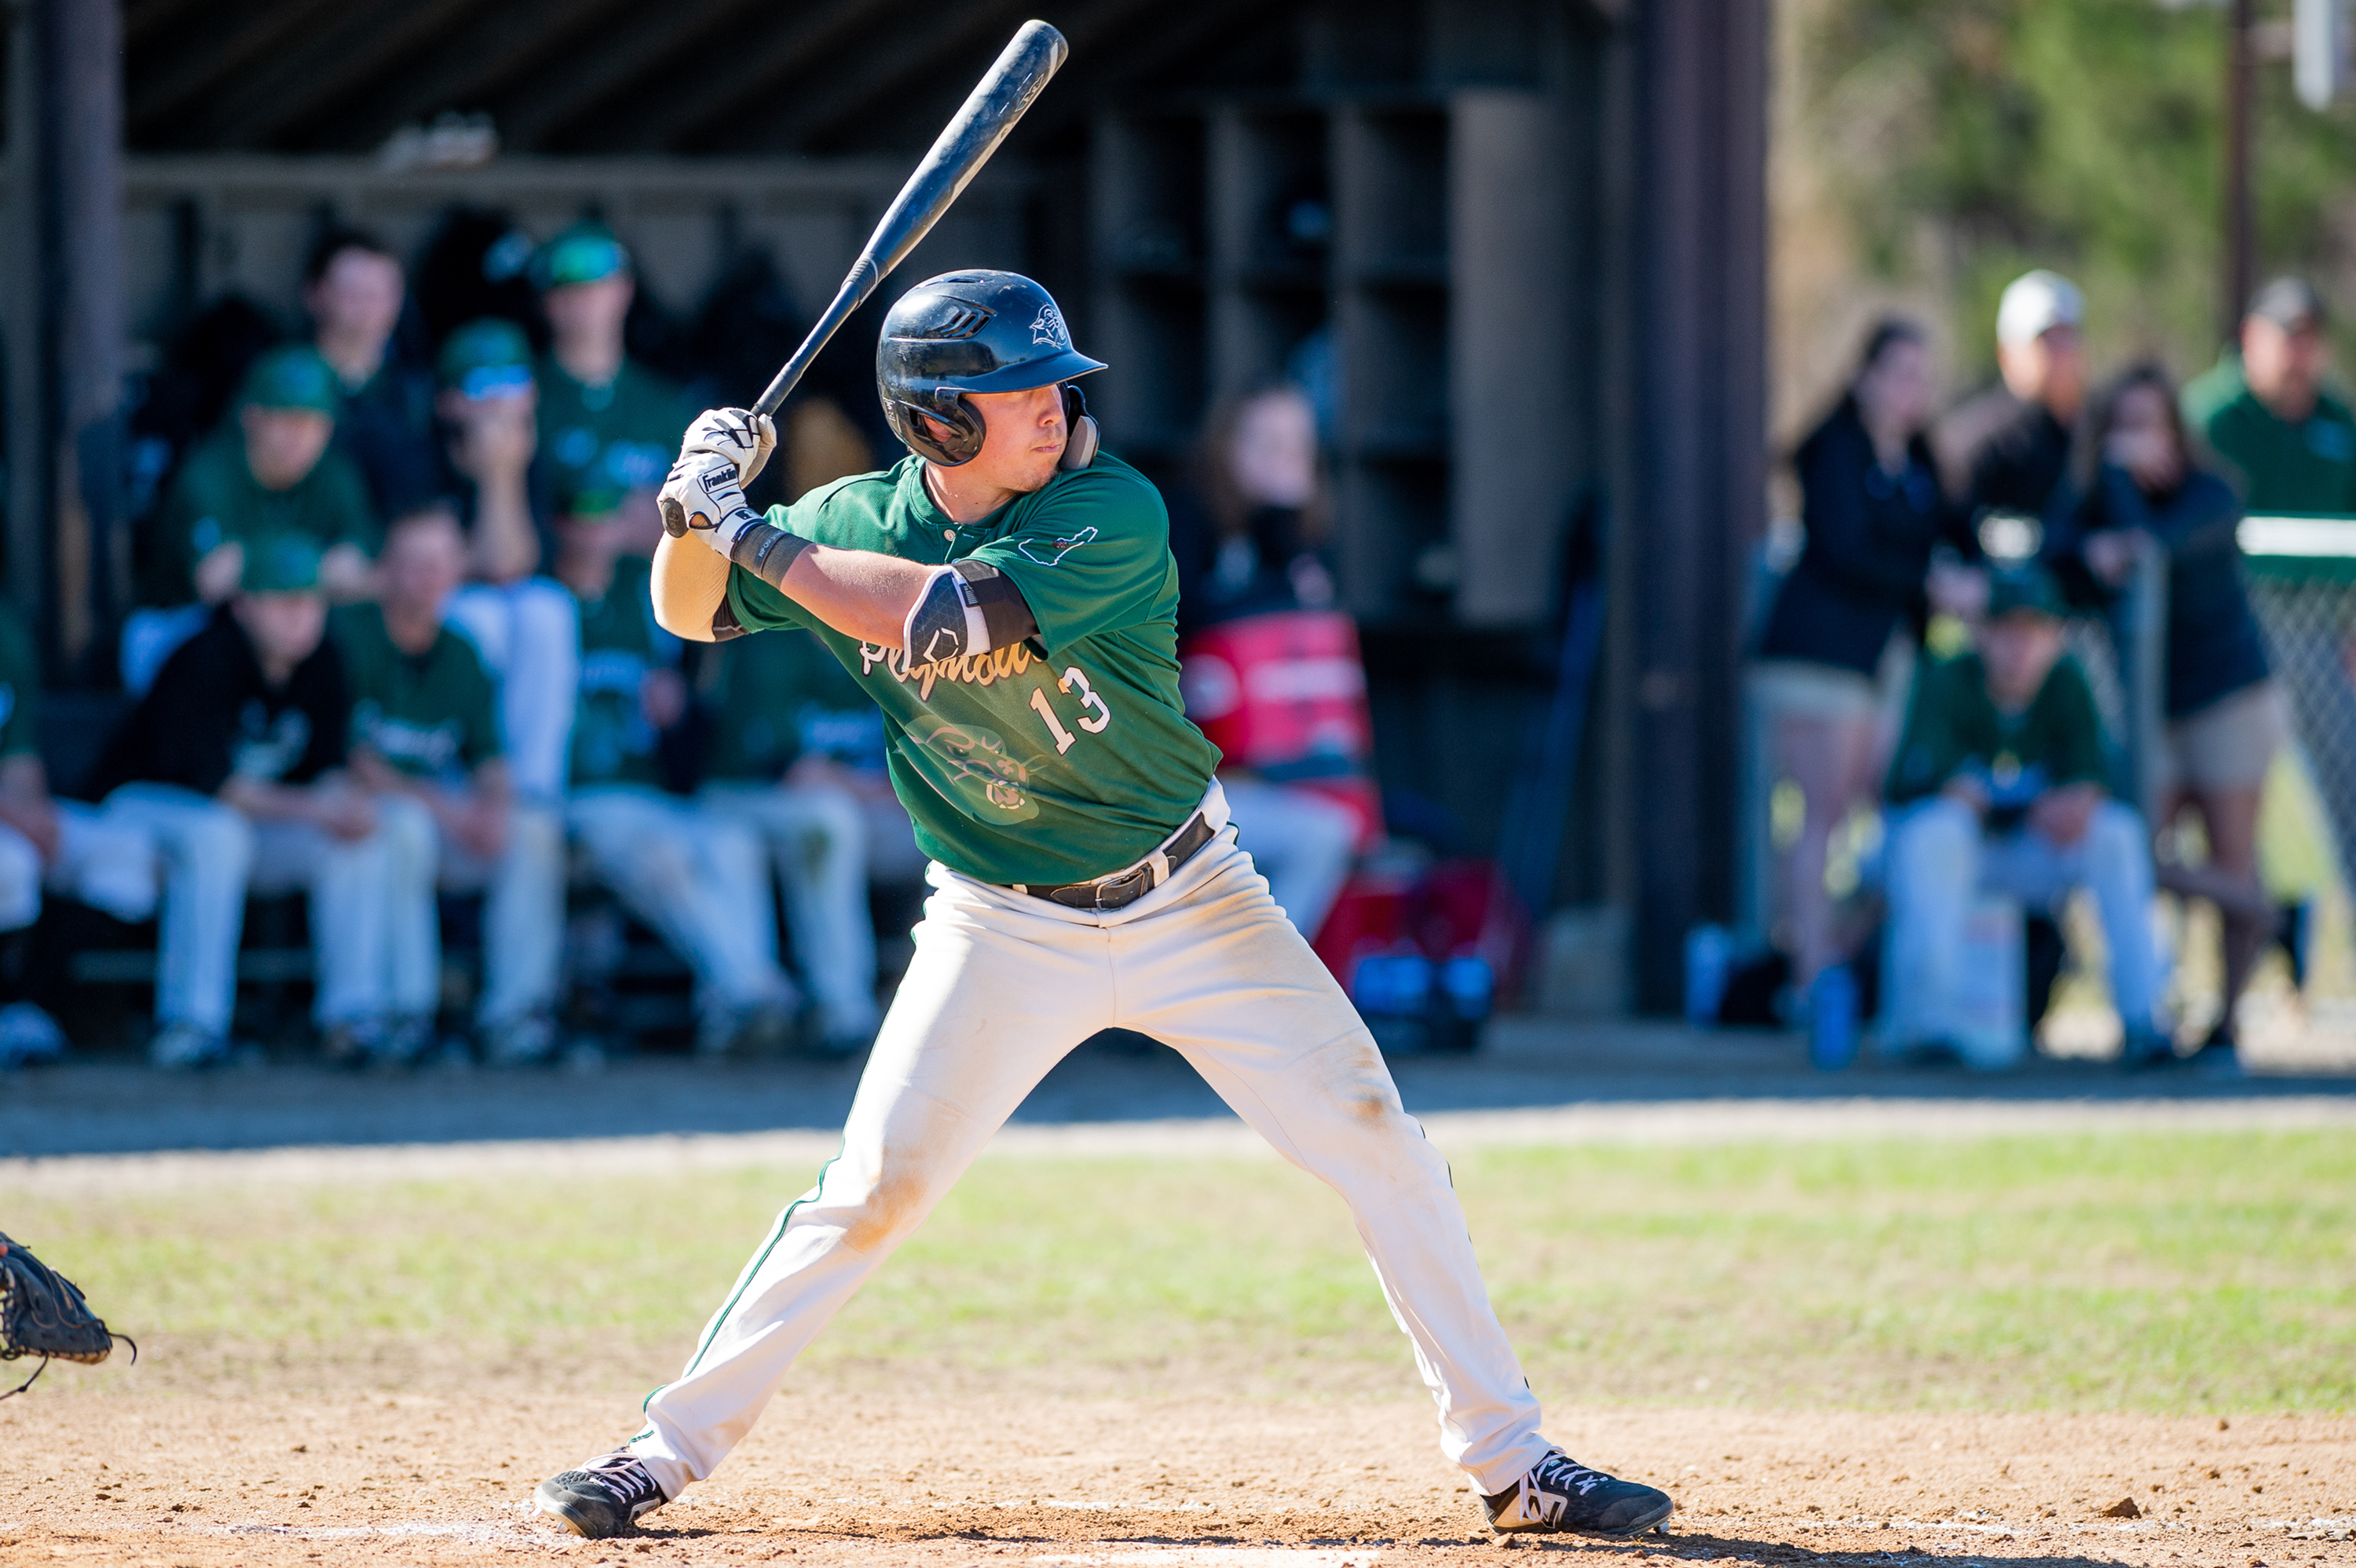 Josh Goulet set multiple PSU game, season, and career records on his way to earning First Team All-America and LEC Player of the Year for baseball.